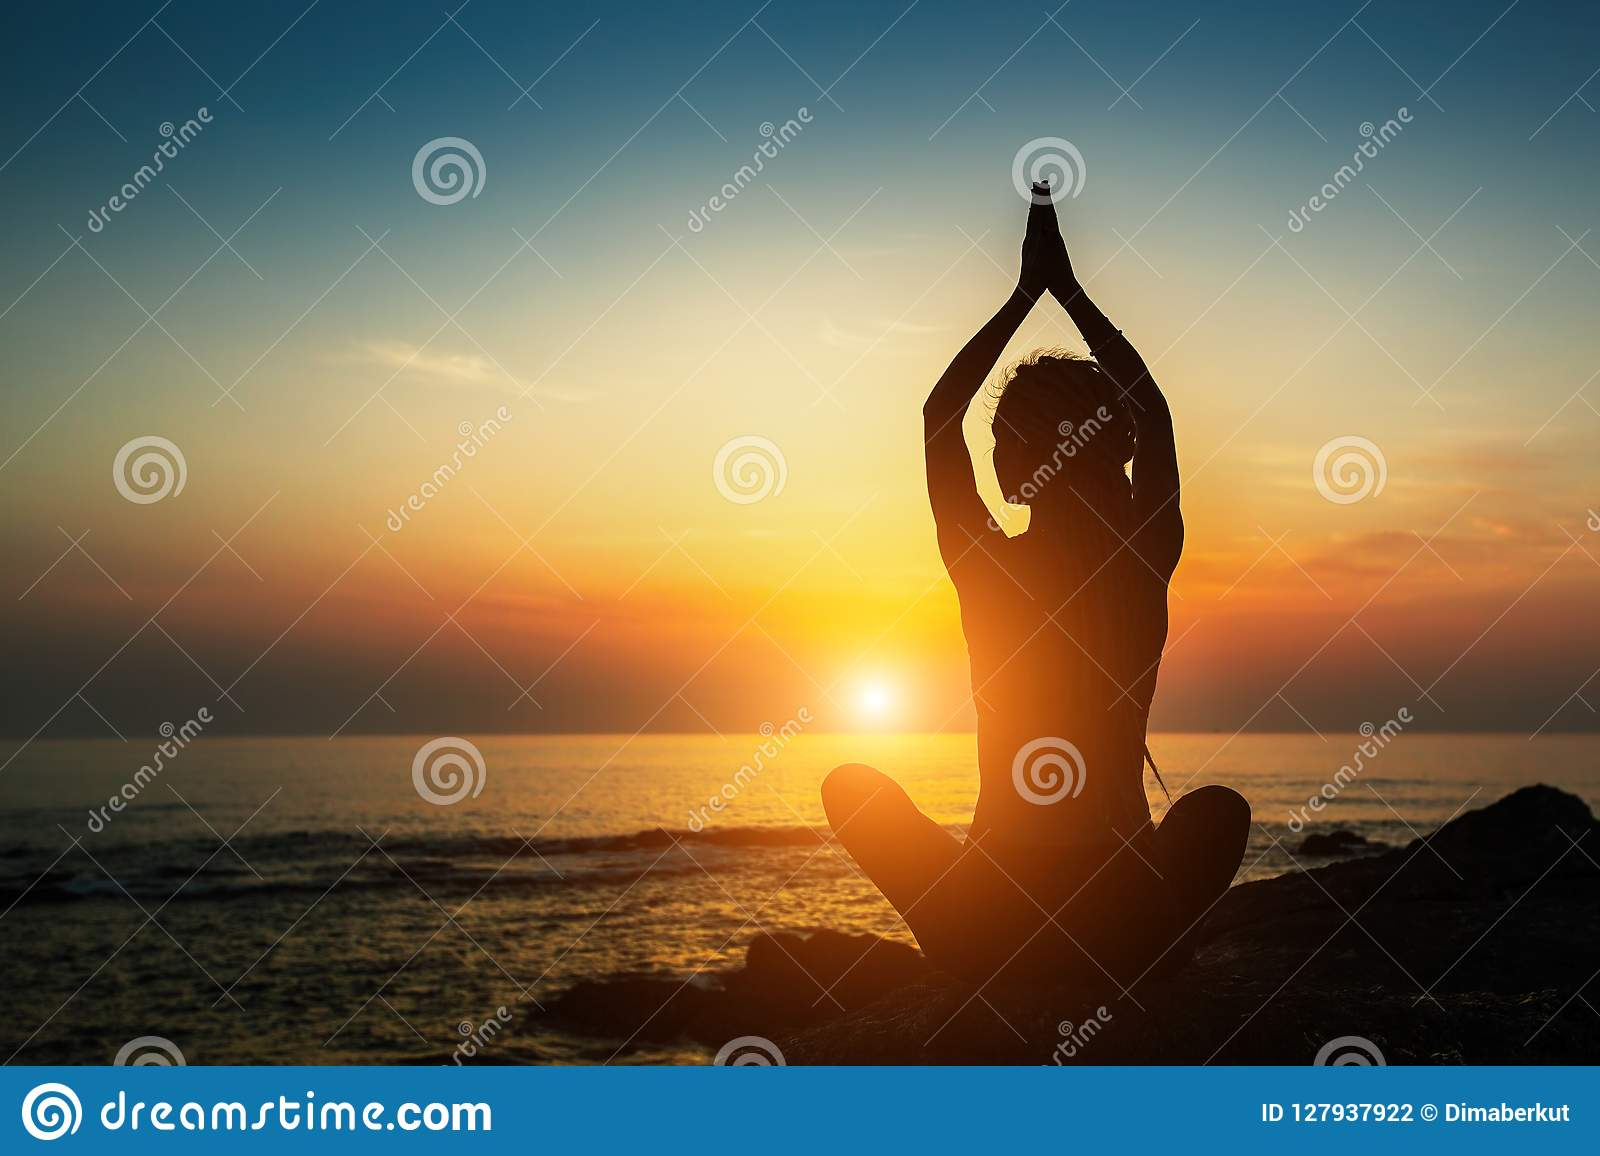 Yoga woman silhouette. Meditation on the ocean. Relax.